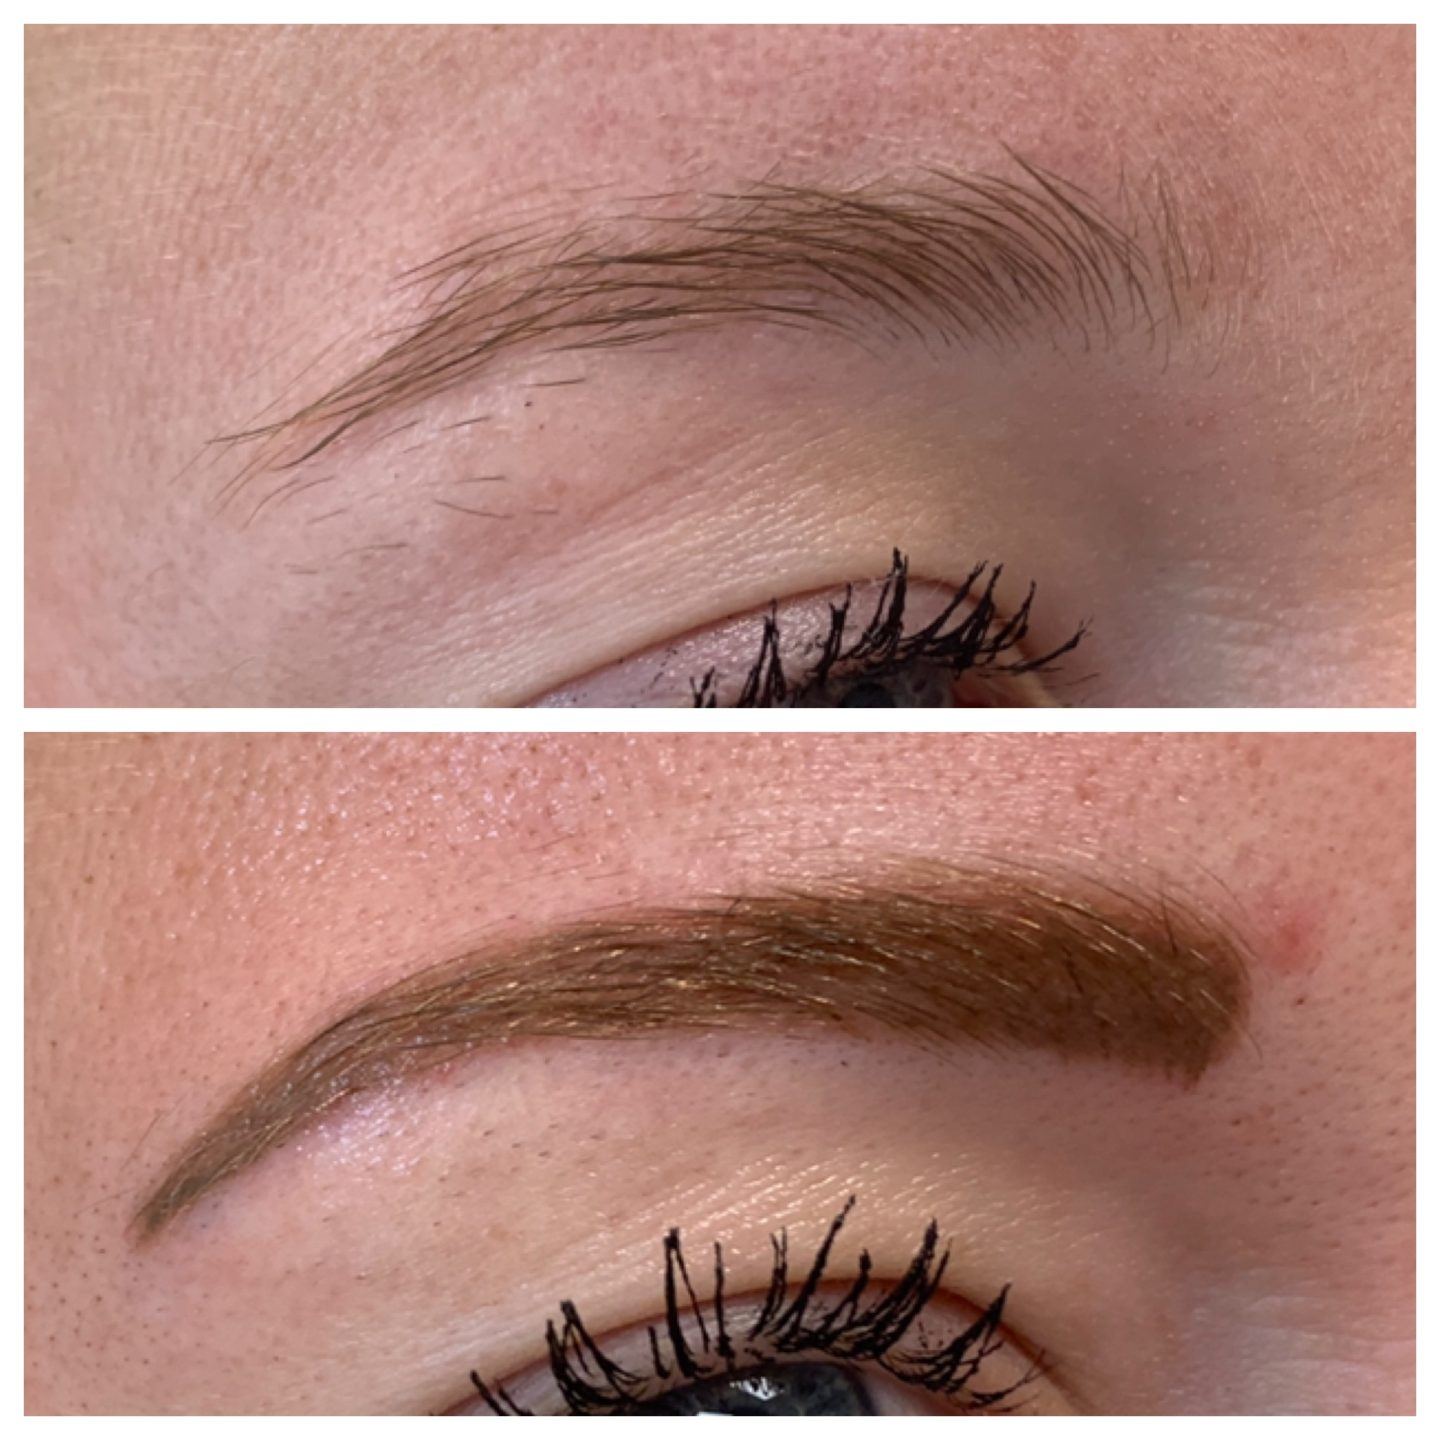 All about microblading your eyebrows, microblading questions and answers